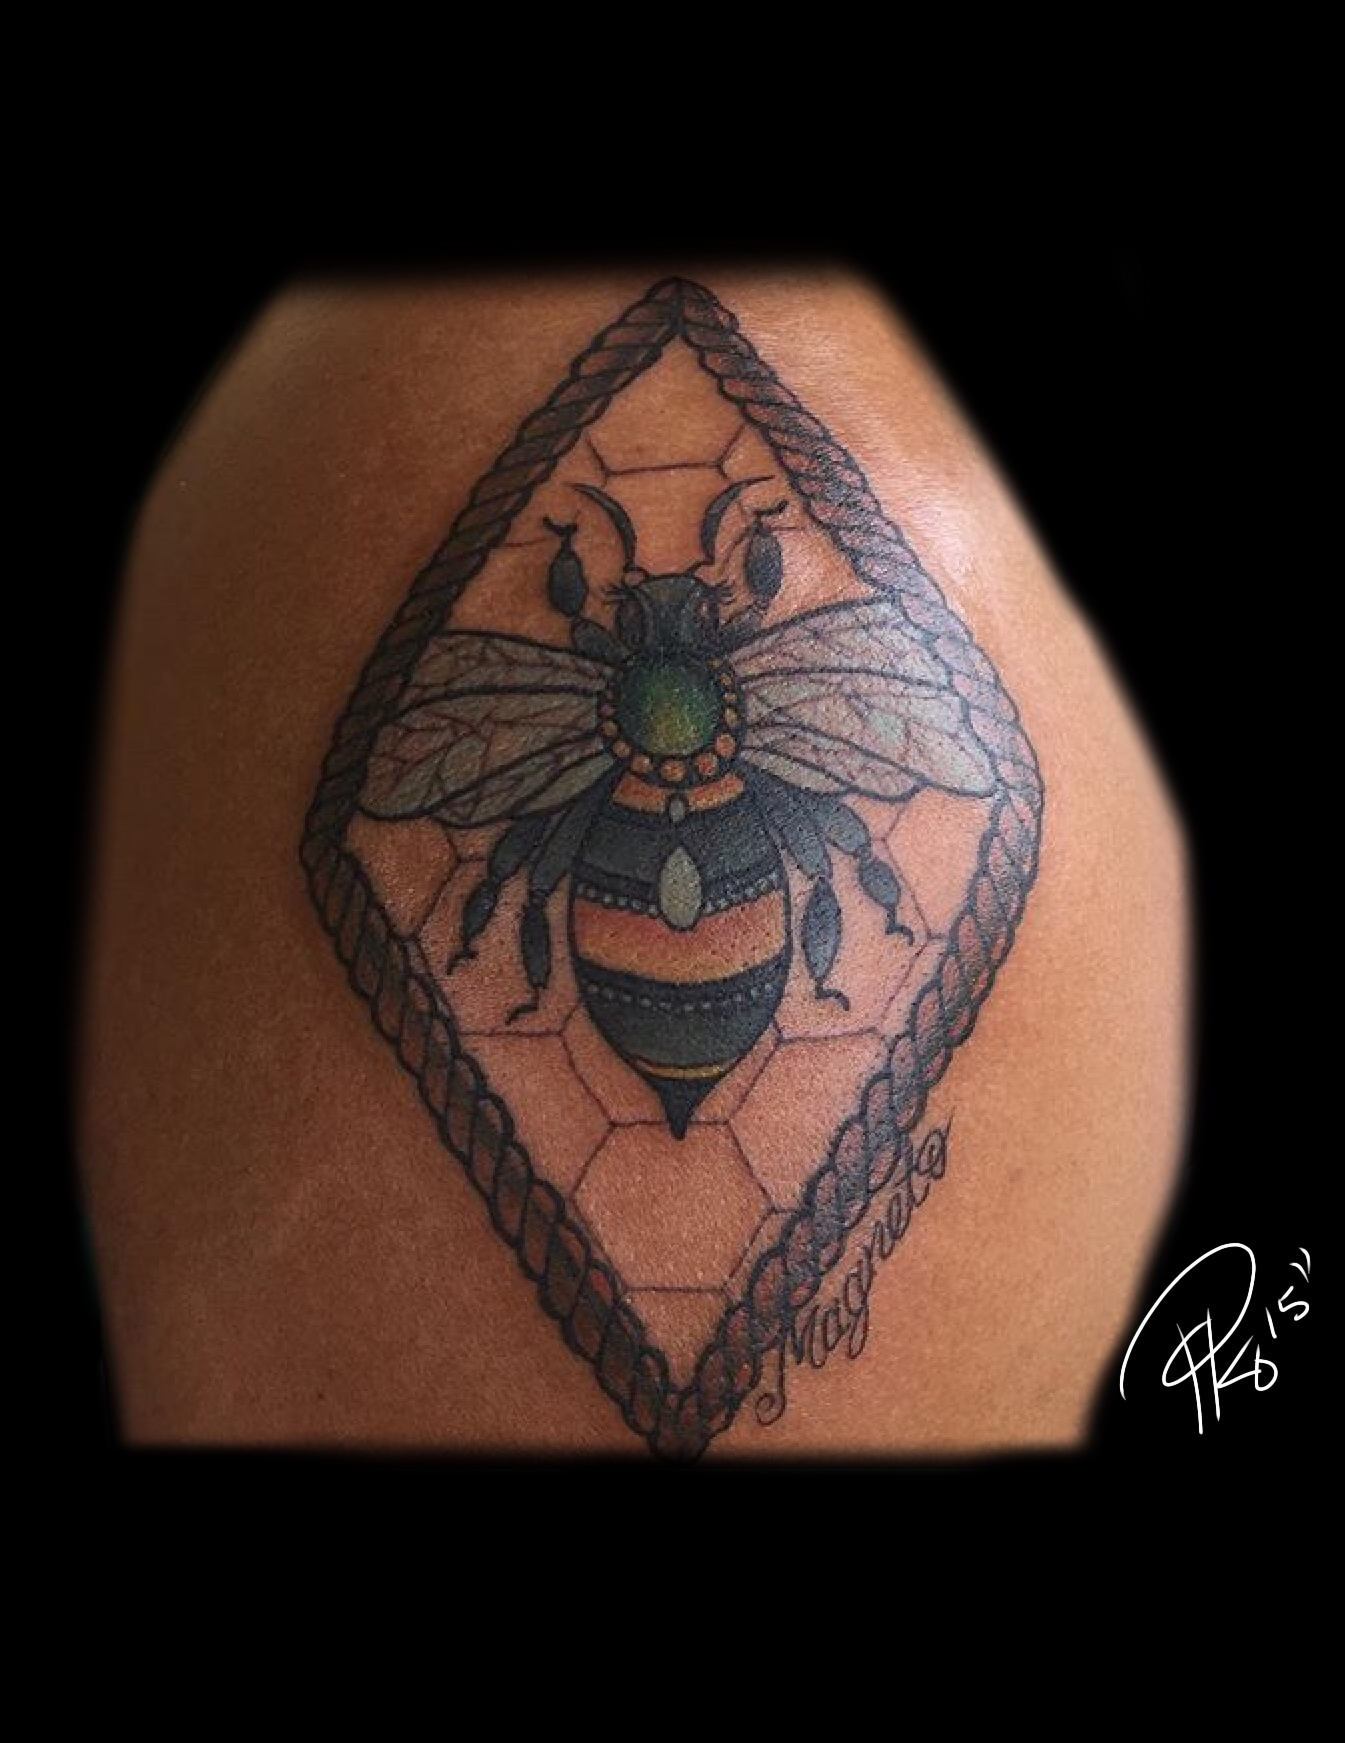 Queen Bee Tattoo By @Peekotattoos